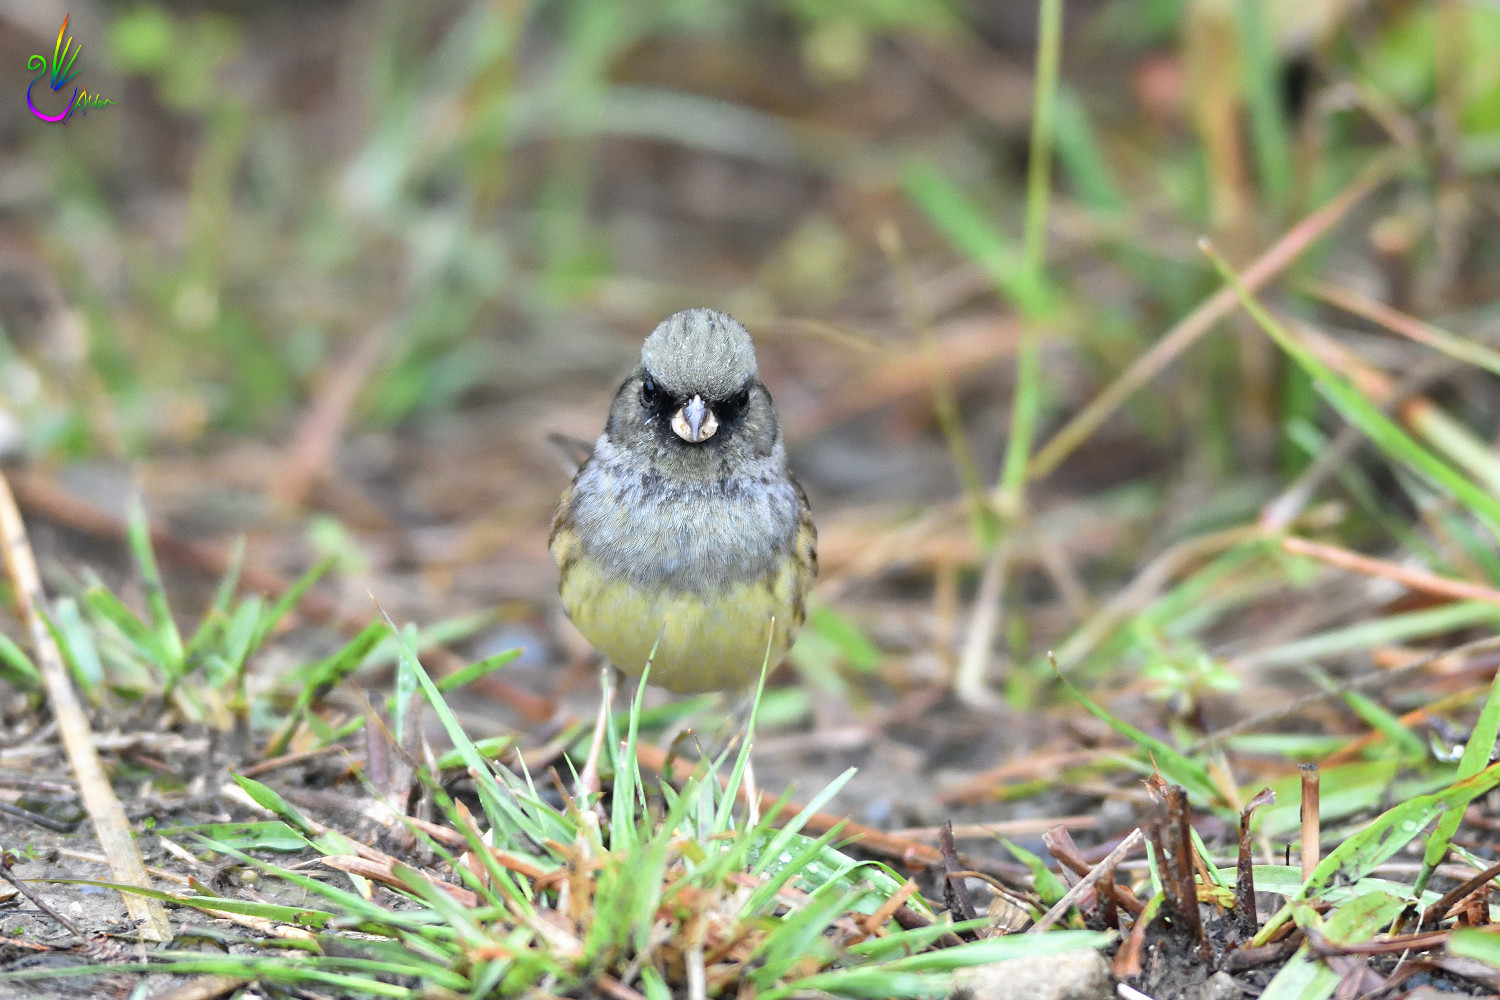 Black-faced_Bunting_7550